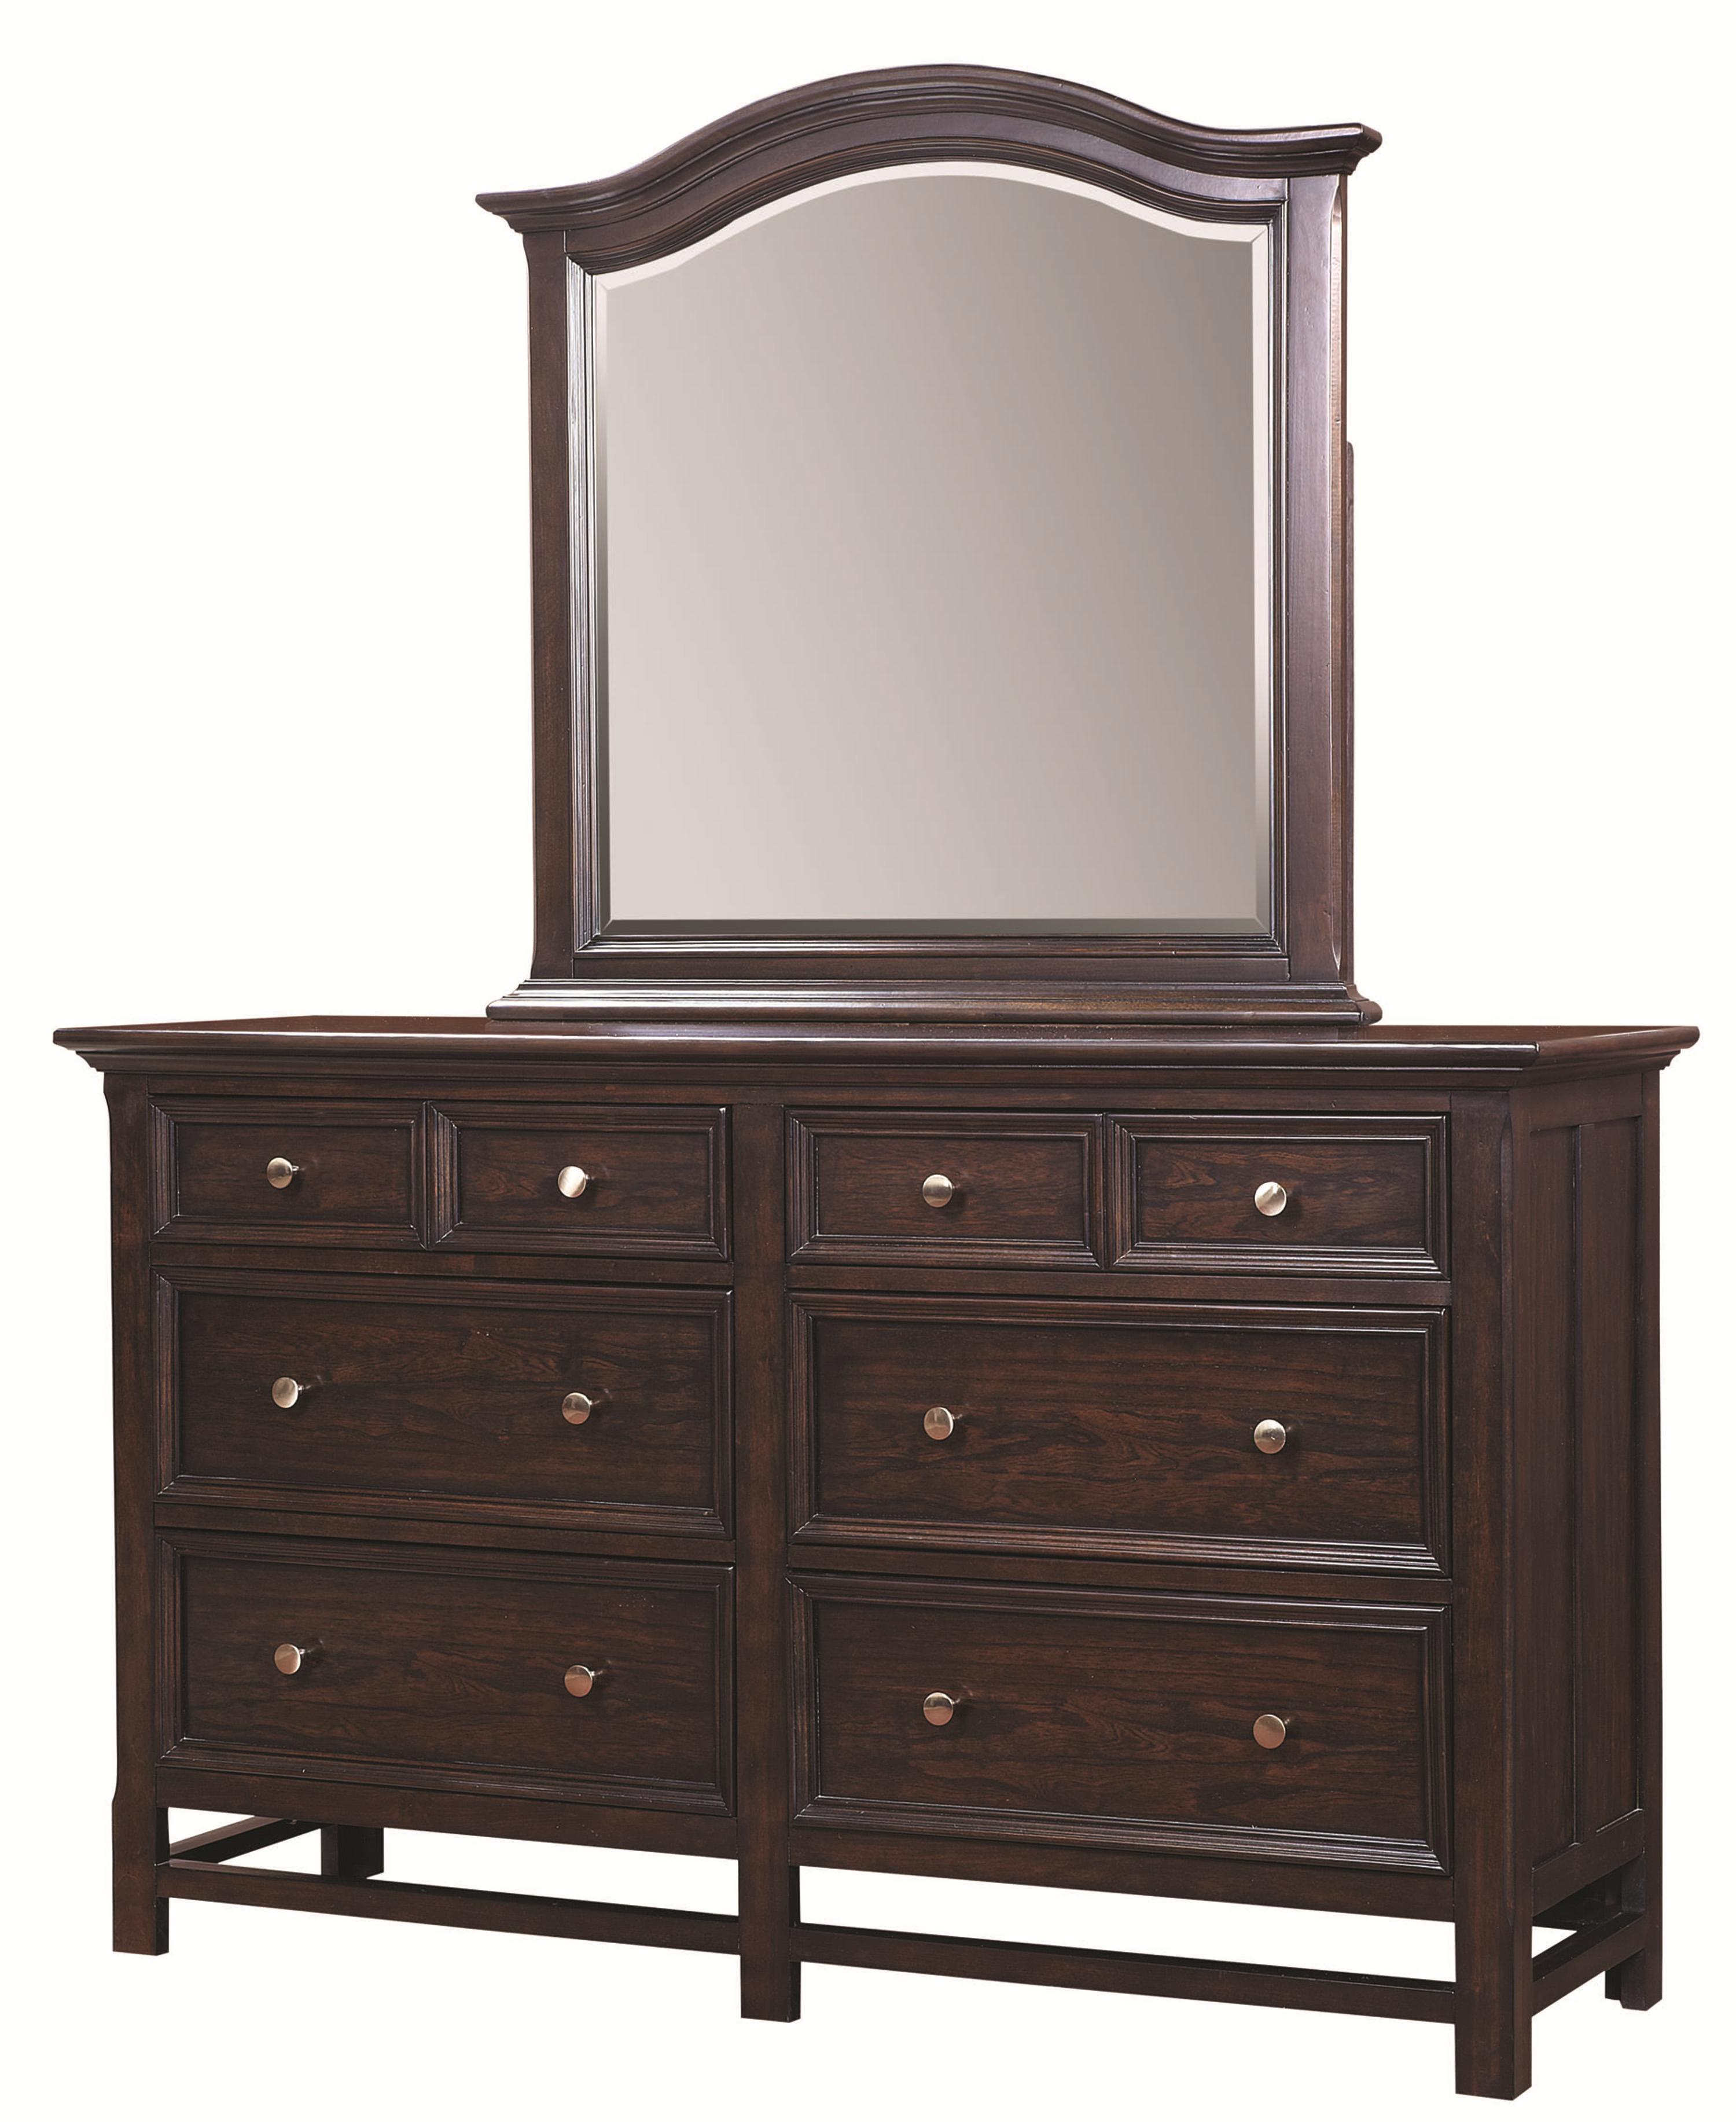 Dresser and Arched Mirror